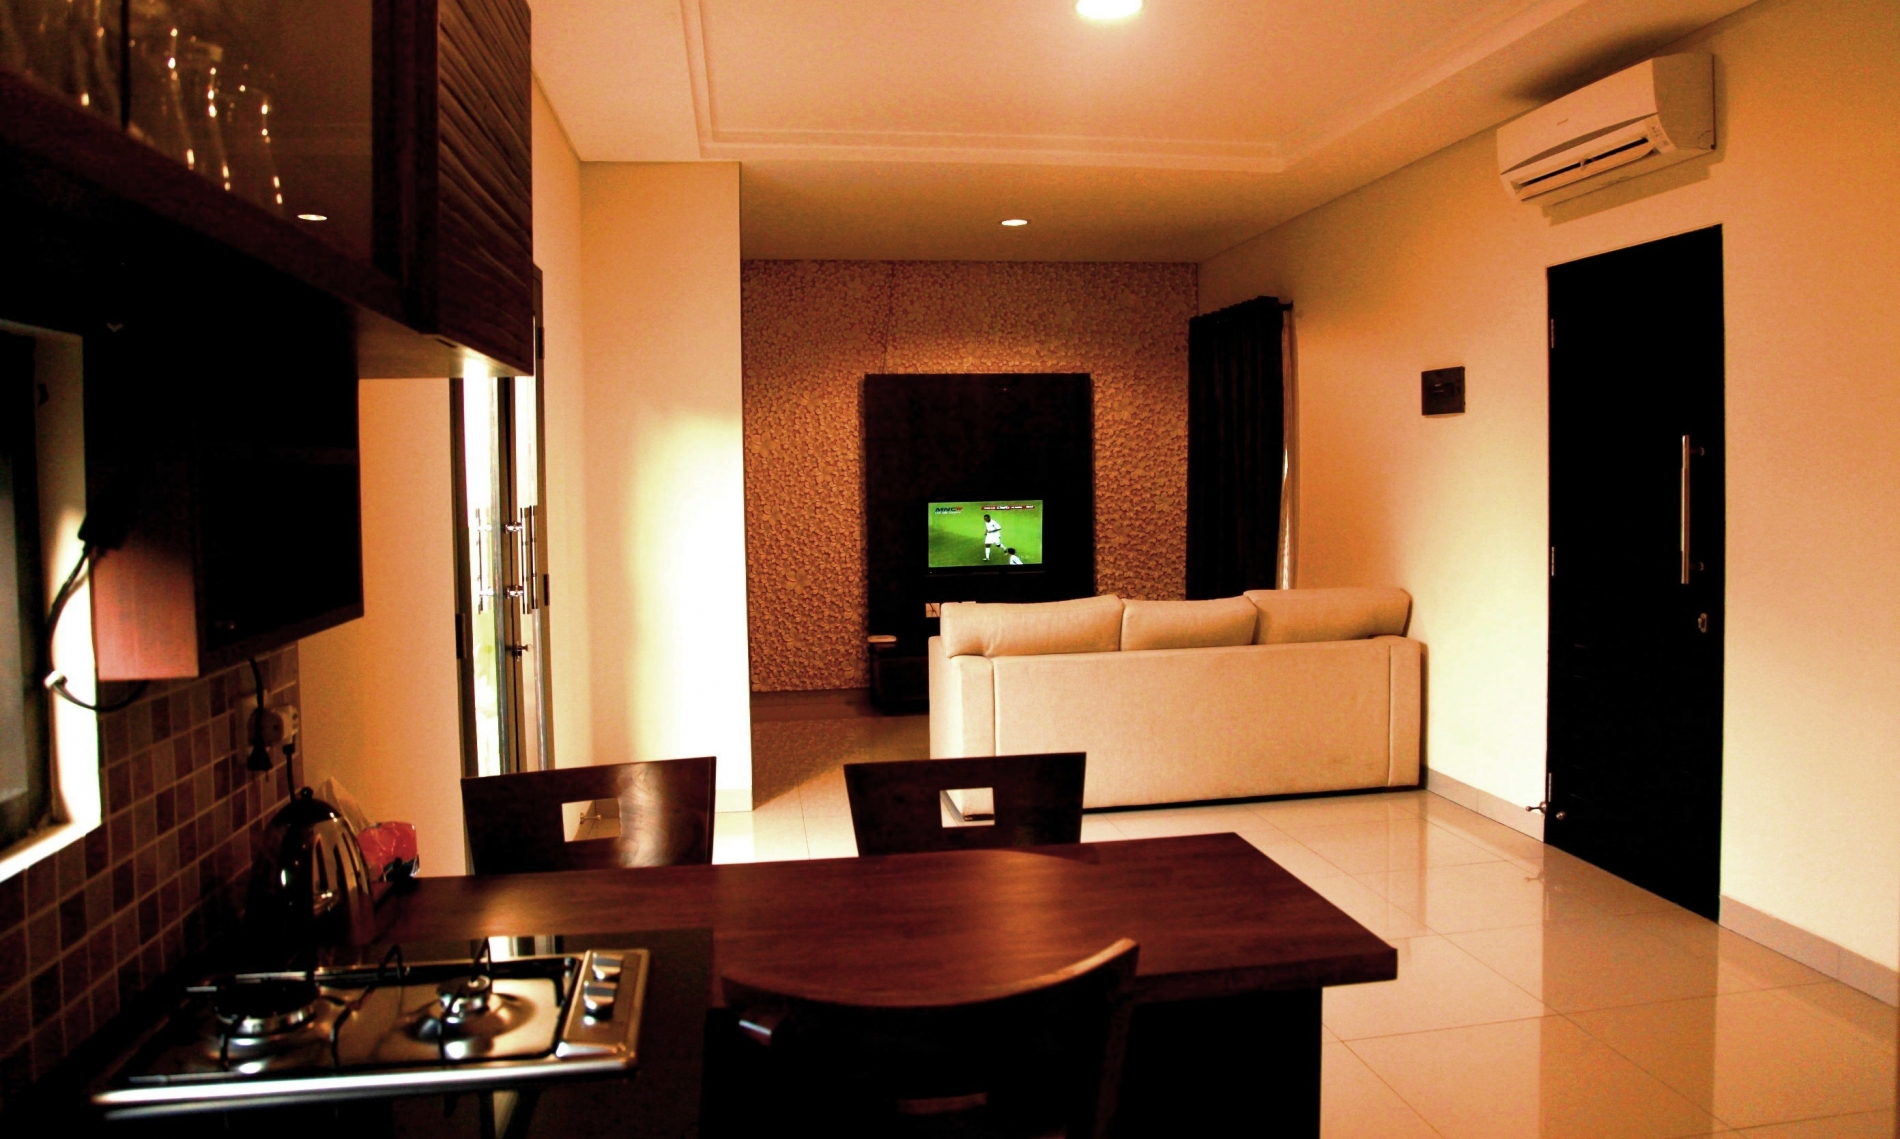 living room & kitchen area (14)